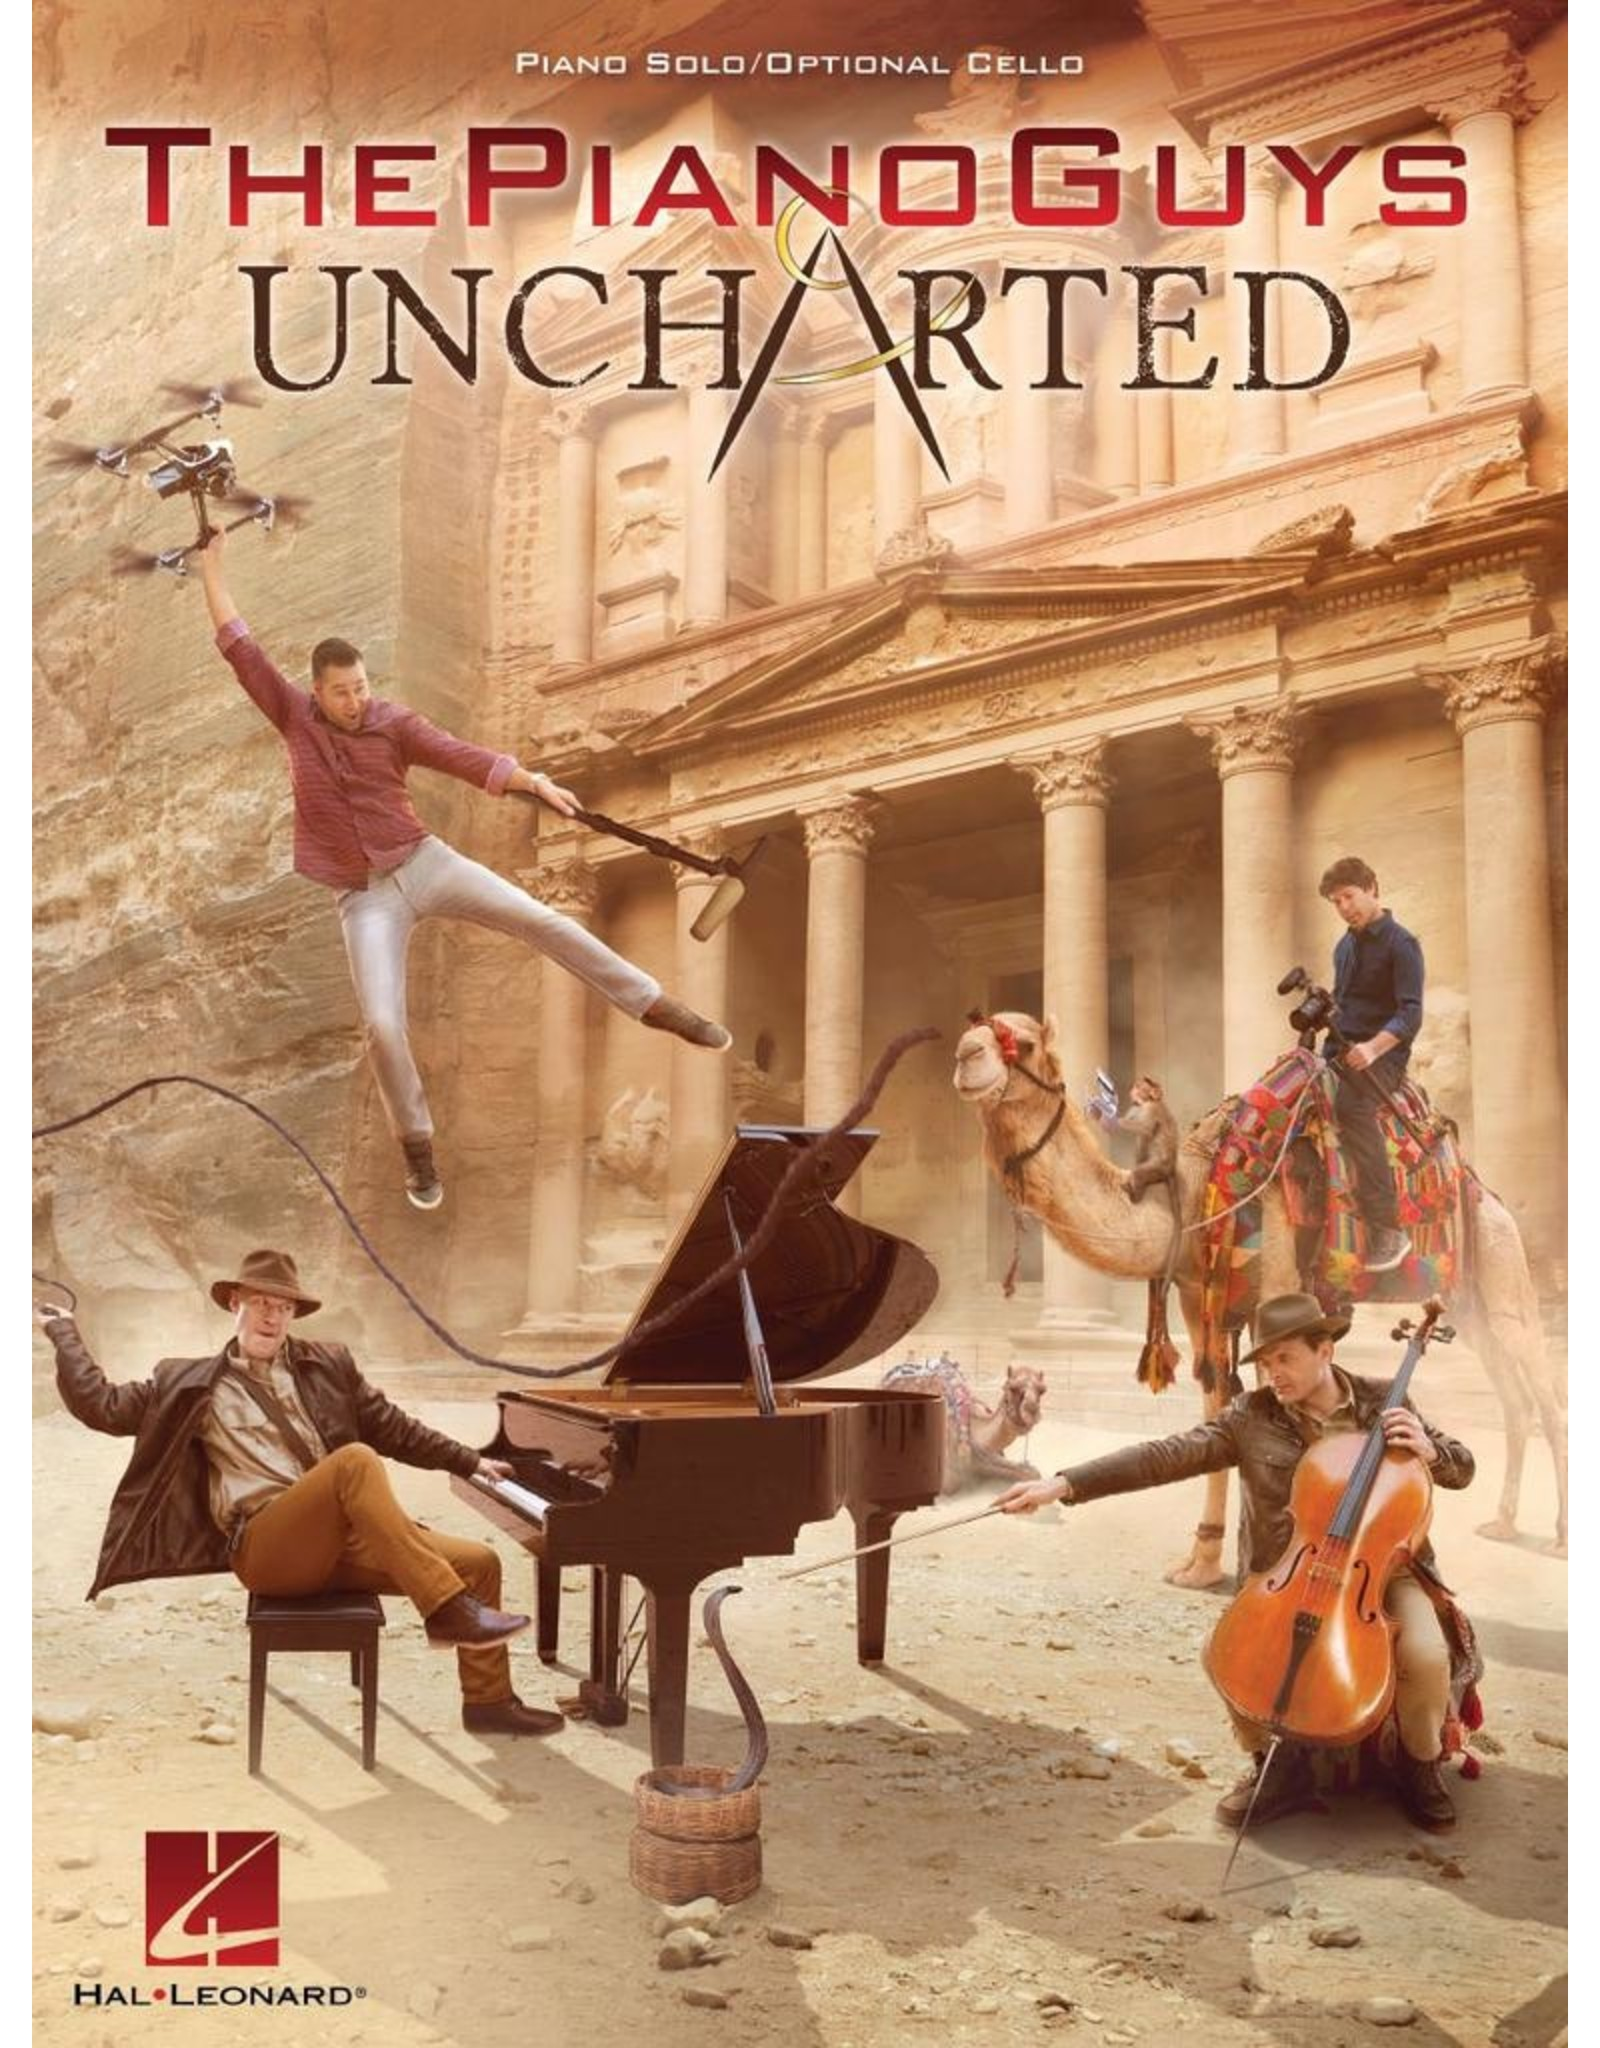 Hal Leonard PIano Guys - Uncharted Piano Solo with Optional Cello